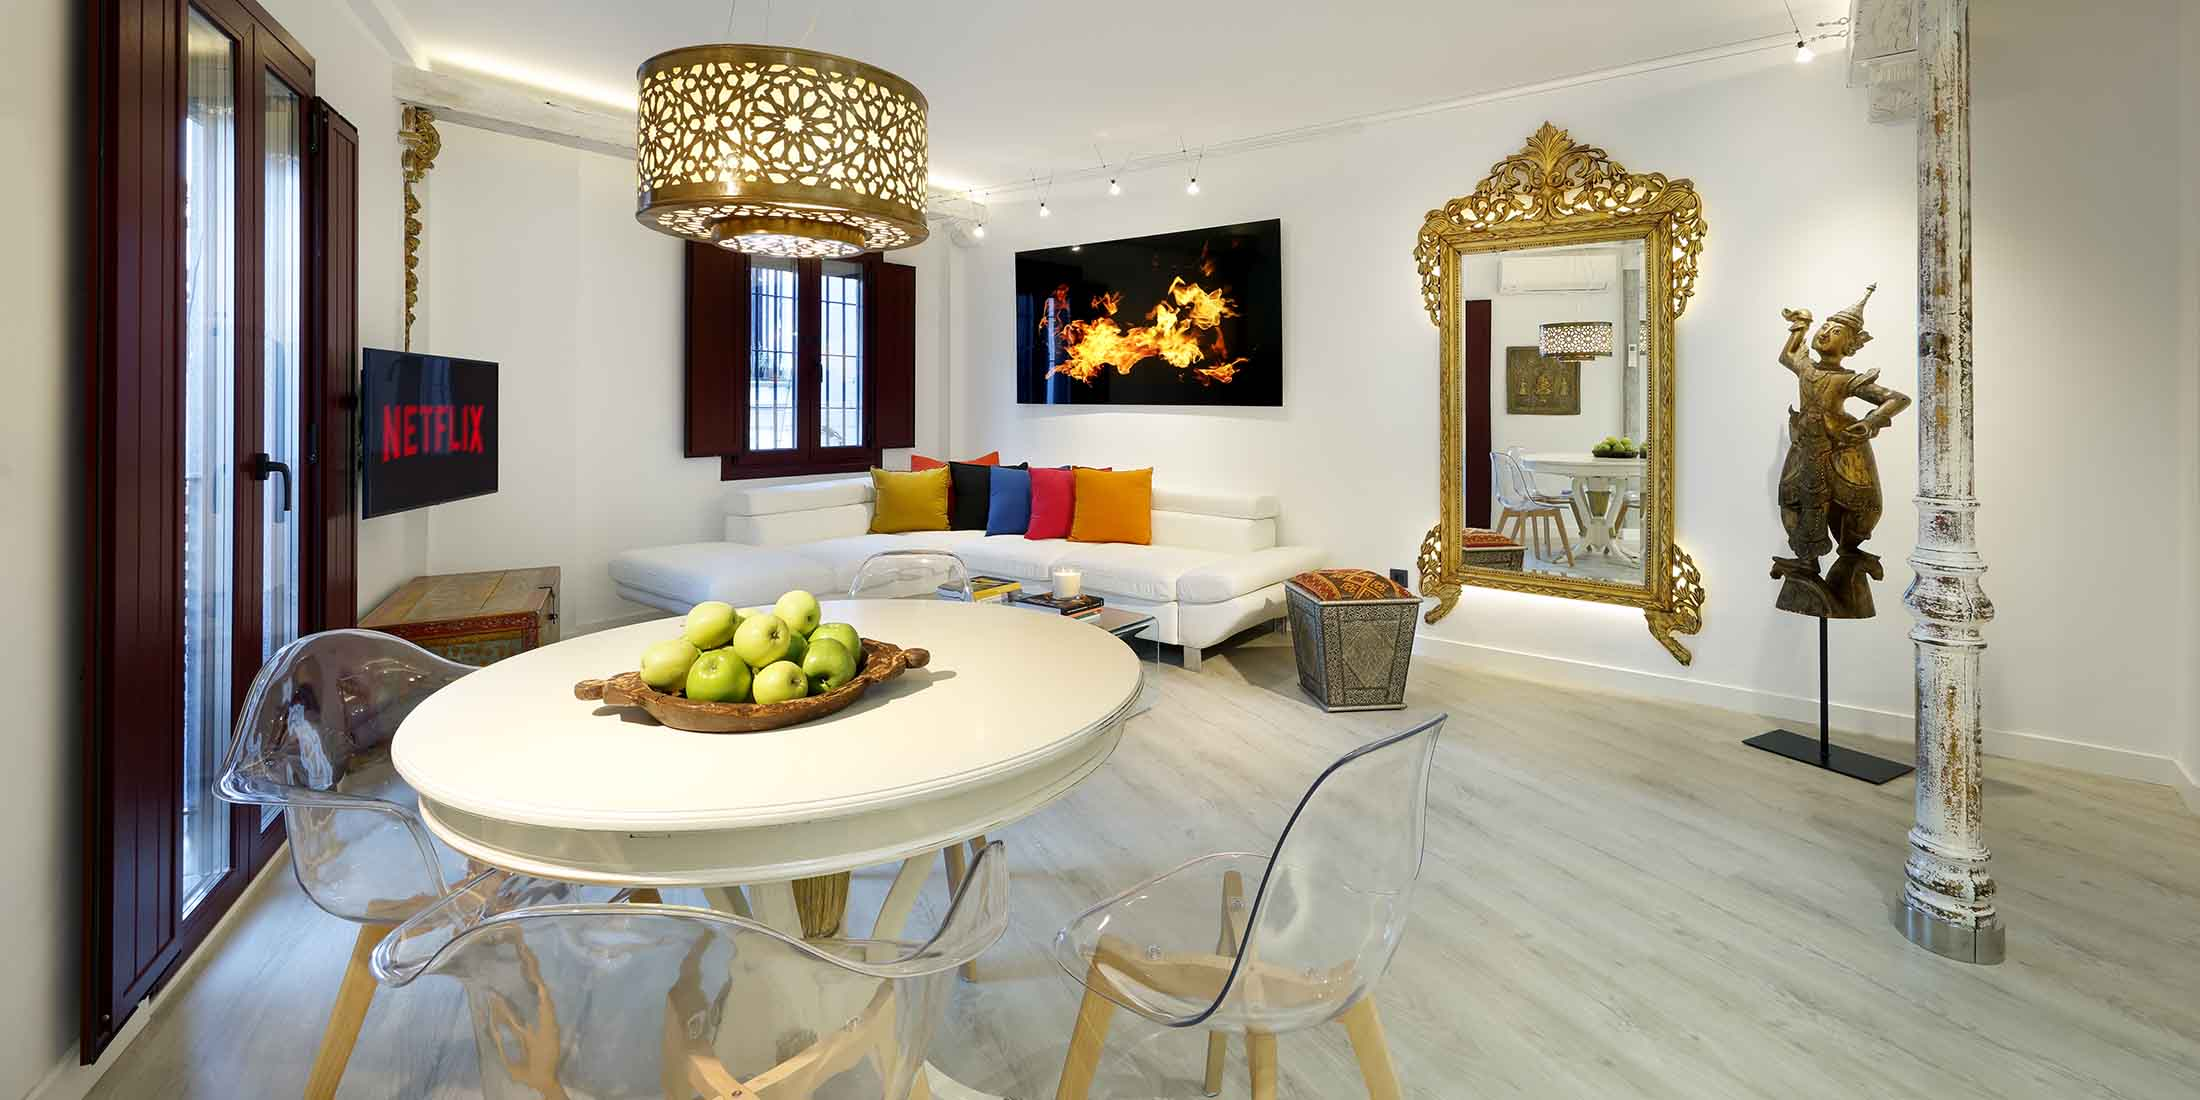 boutique airbnb apartment near alhambra in Granada Spain with fancy decoration